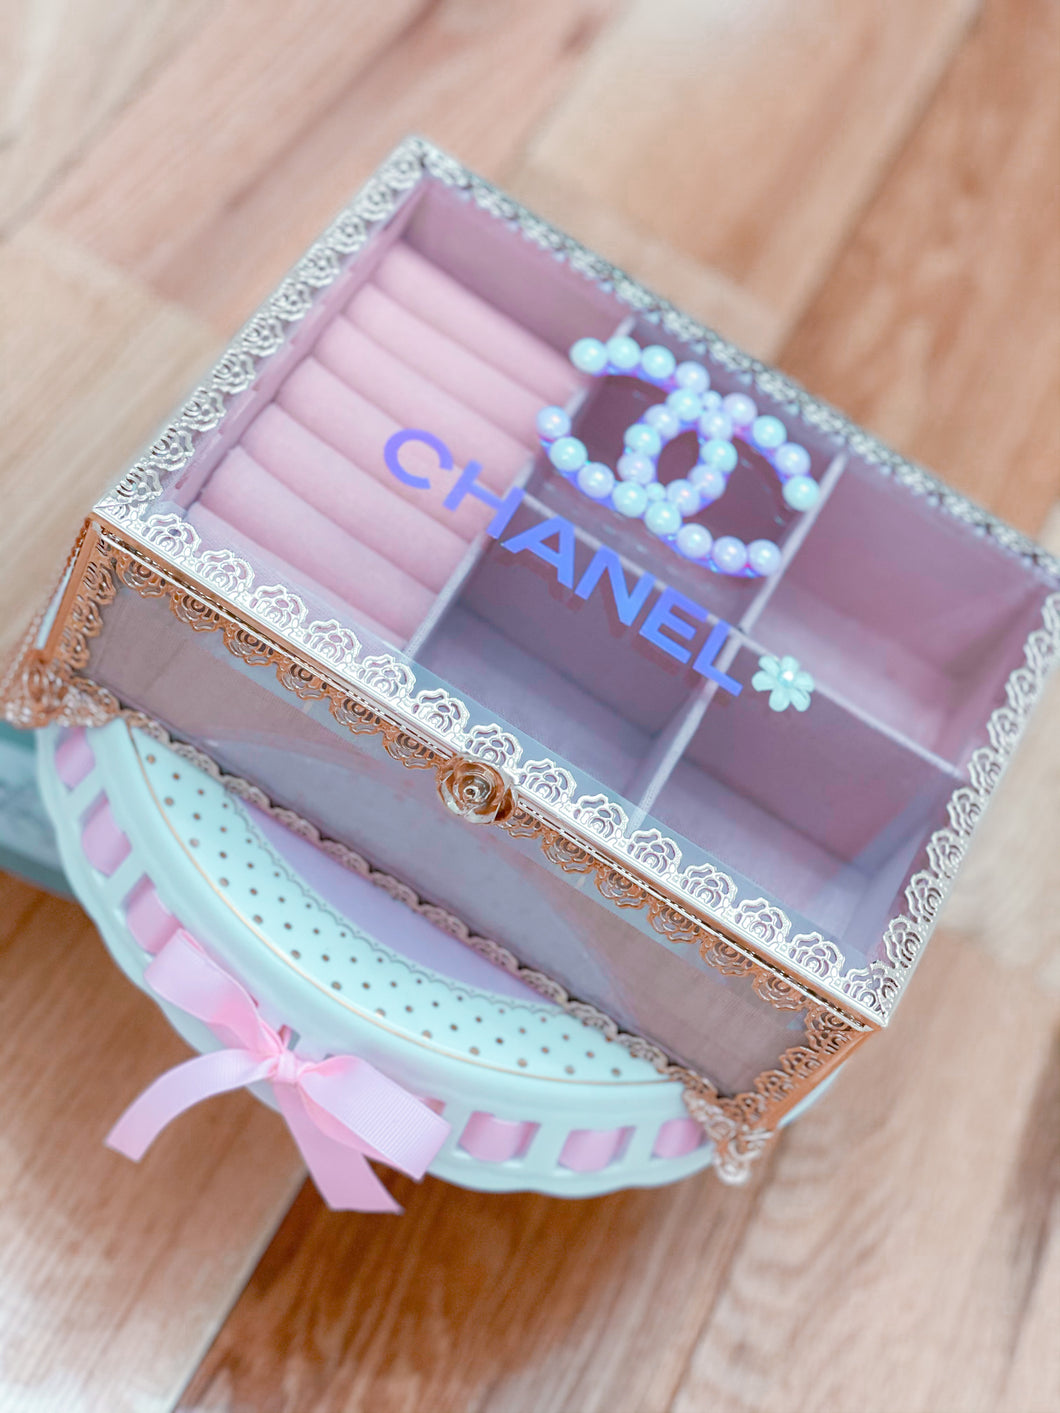 Inspired Chanel Jewerly Box